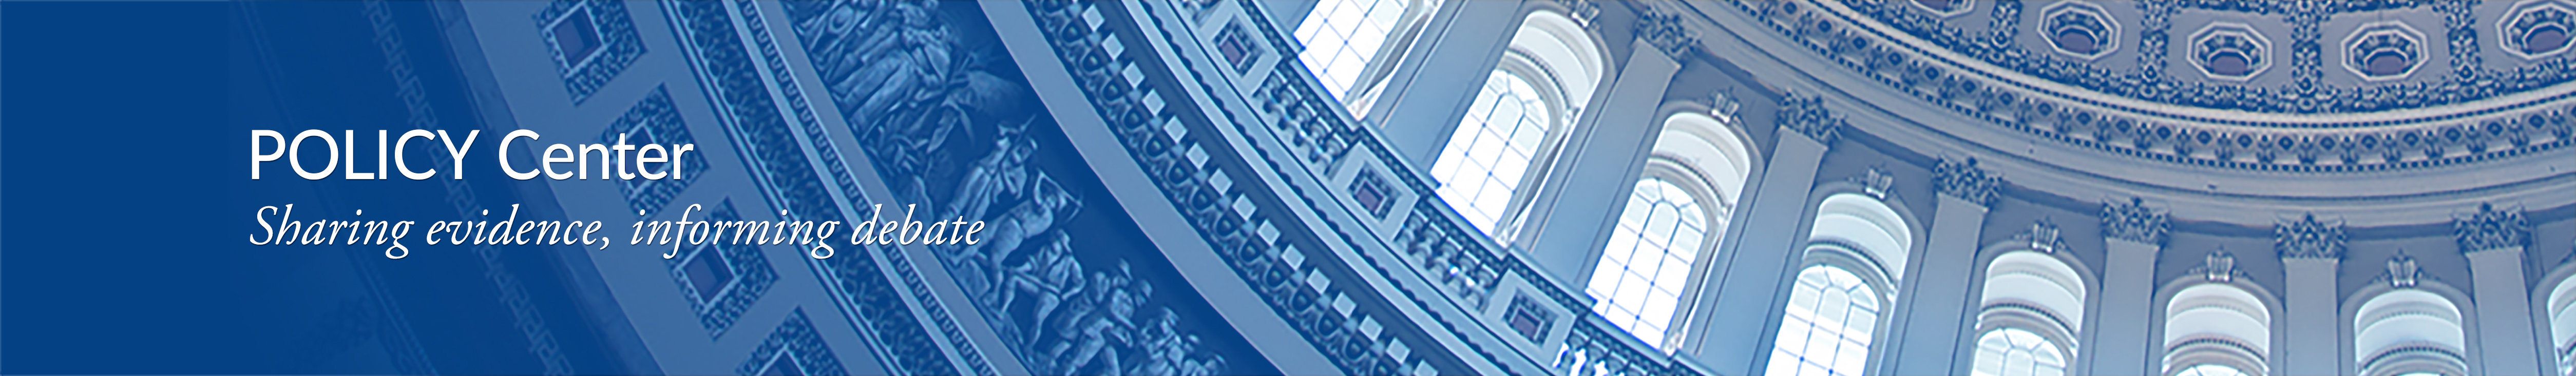 Policy Center header with image of capitol dome